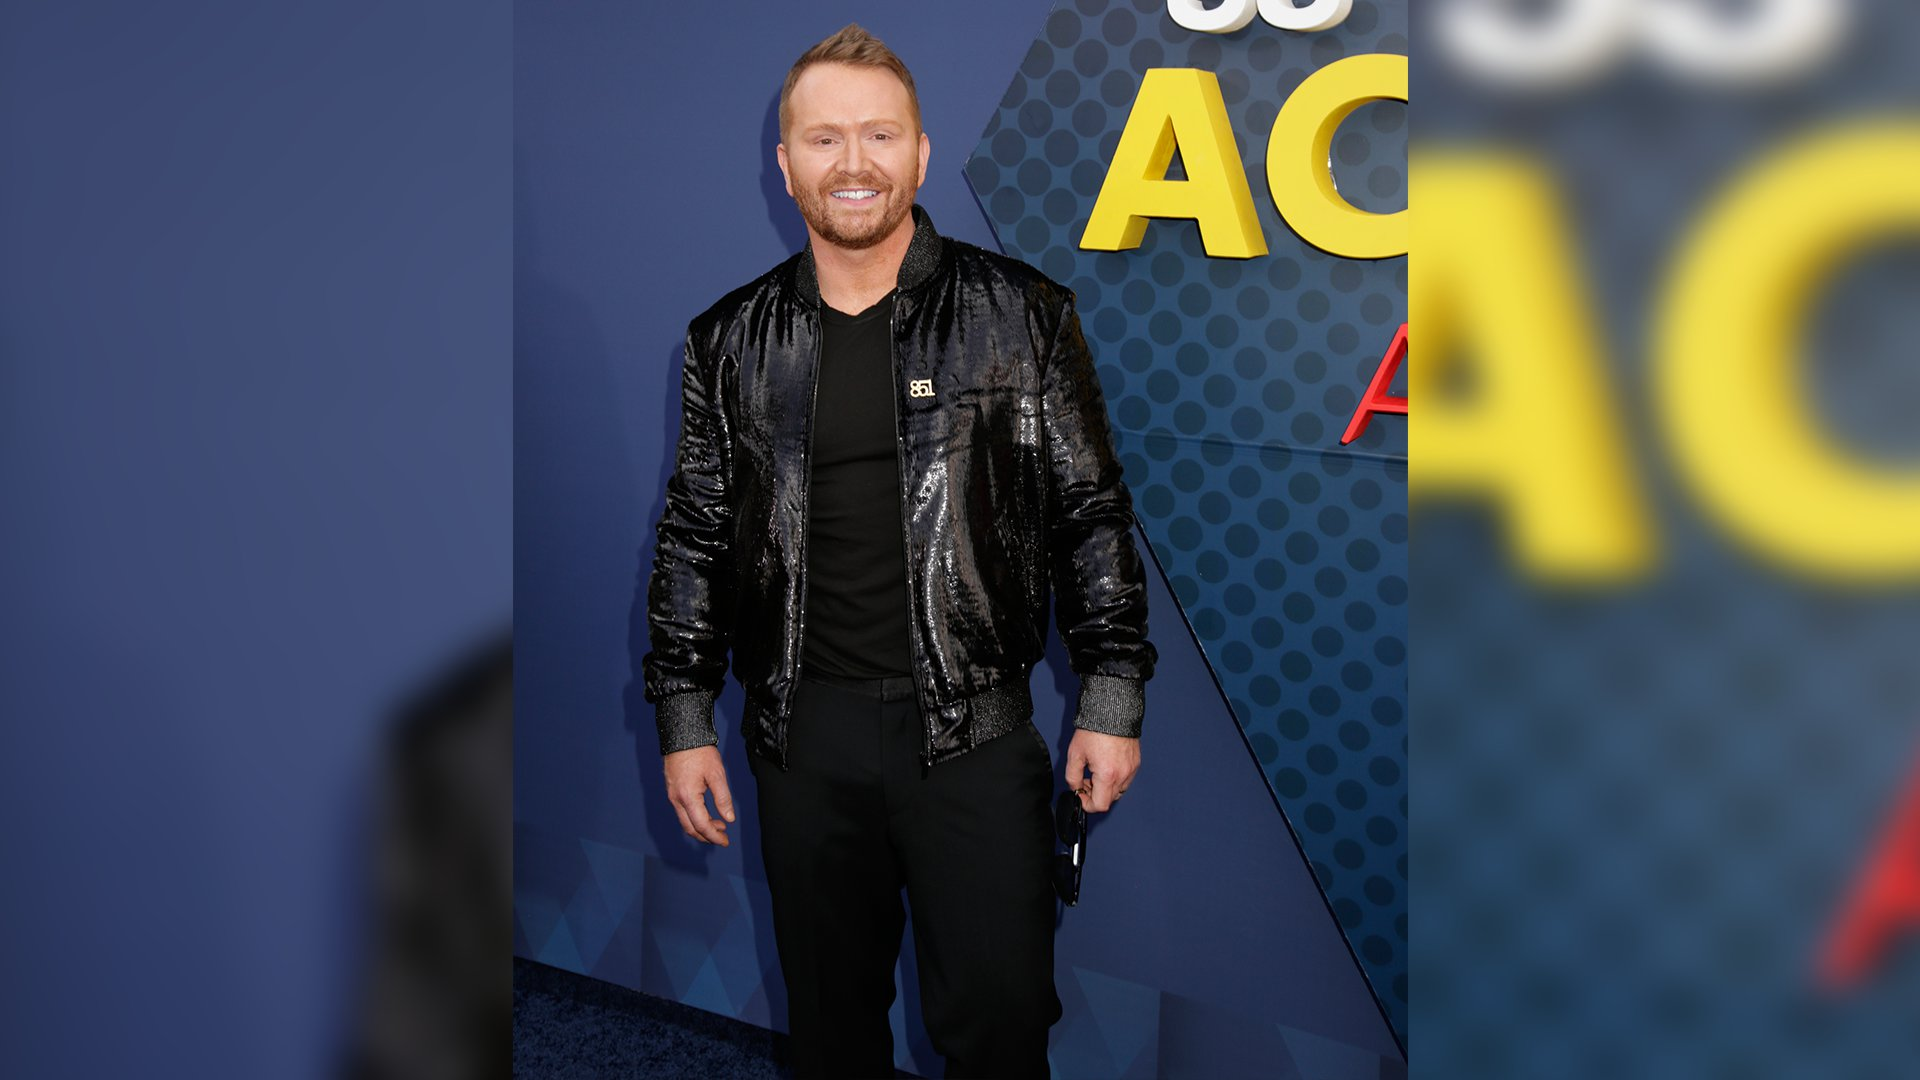 Singer/songwriter Shane McAnally looks trés chic in his all-black ensemble.